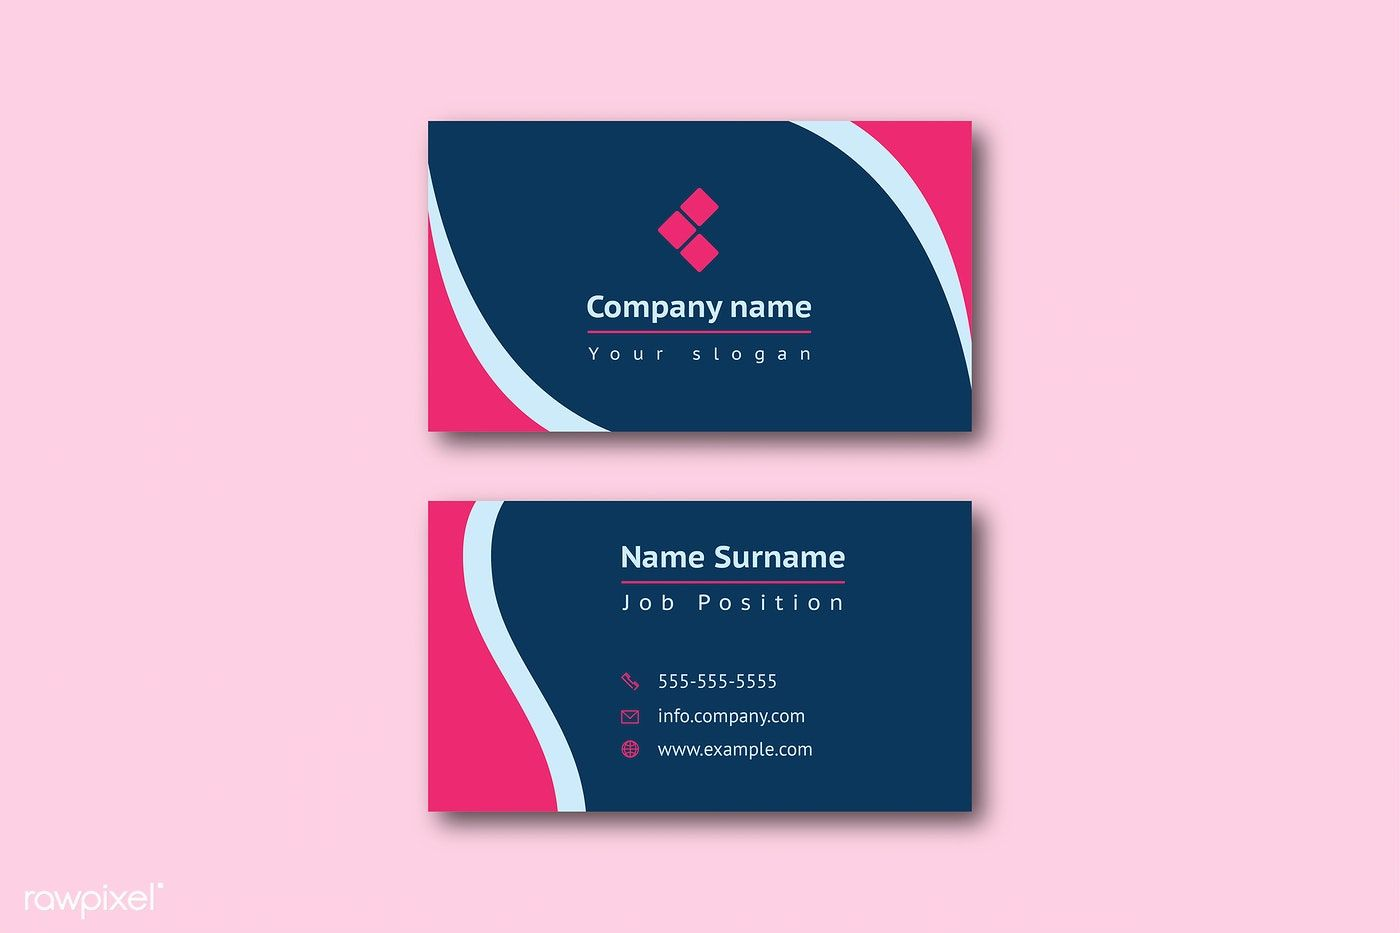 Business Card Template Front And Back Vector Free Image By Rawpixel Com Jan In 2021 Business Card Template Stationery Mockup Vector Free